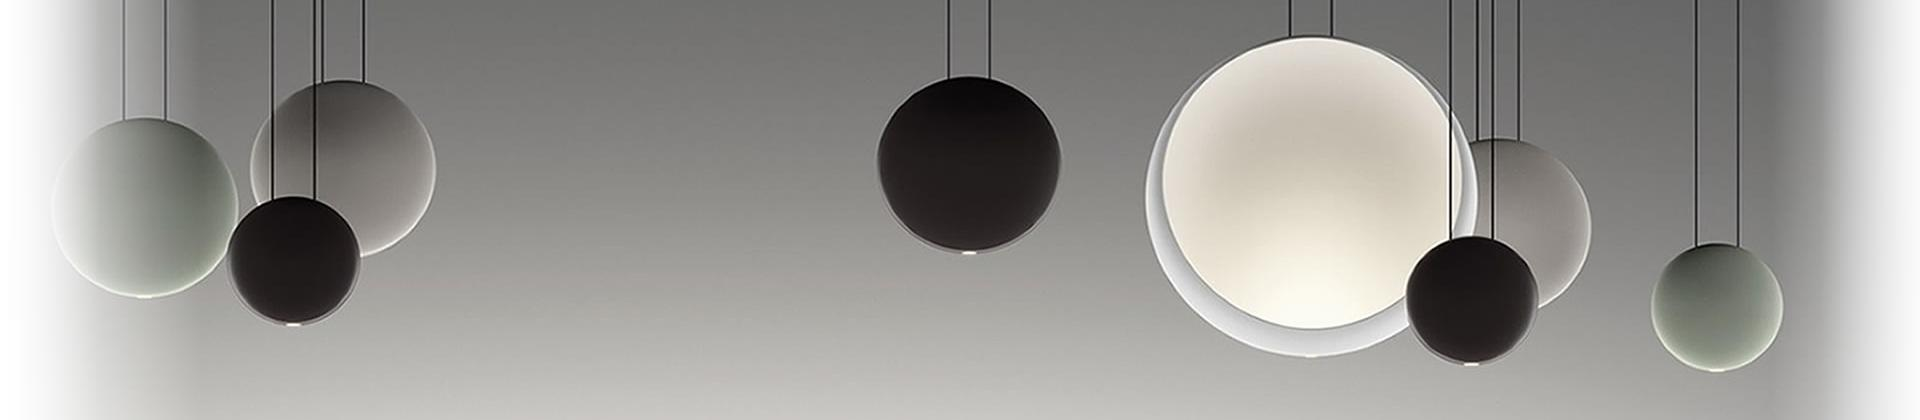 Vibia slim light